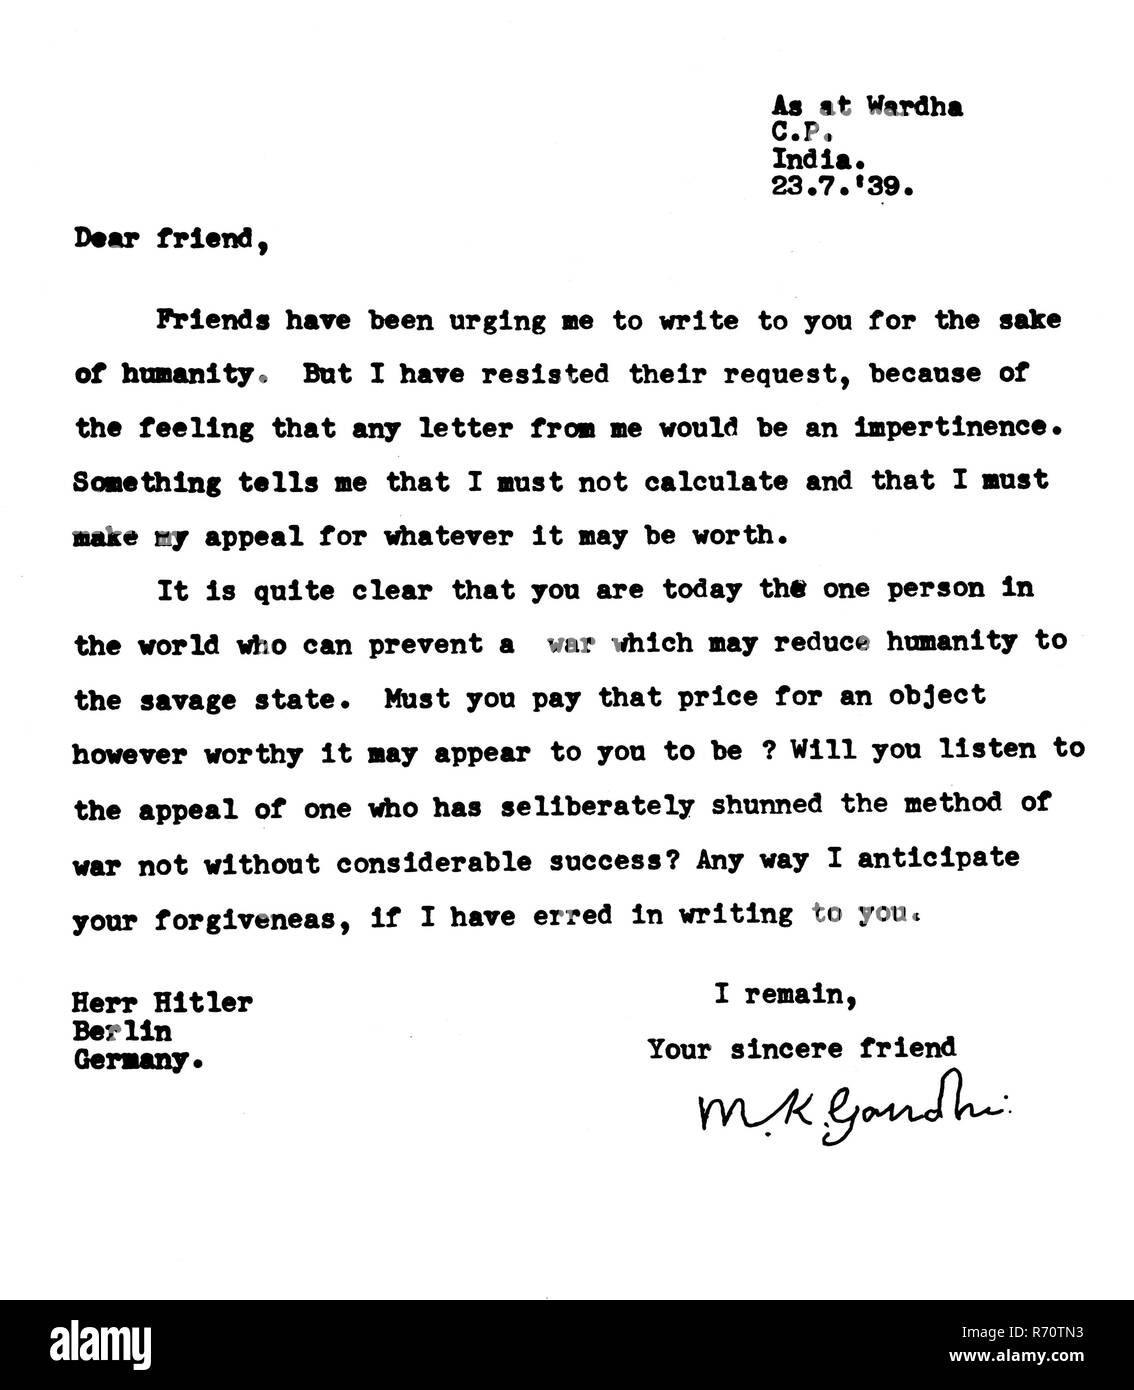 Mahatma Gandhi's first letter to Adolf Hitler, July 23, 1939 - MODEL RELEASE NOT AVAILABLE - Stock Image